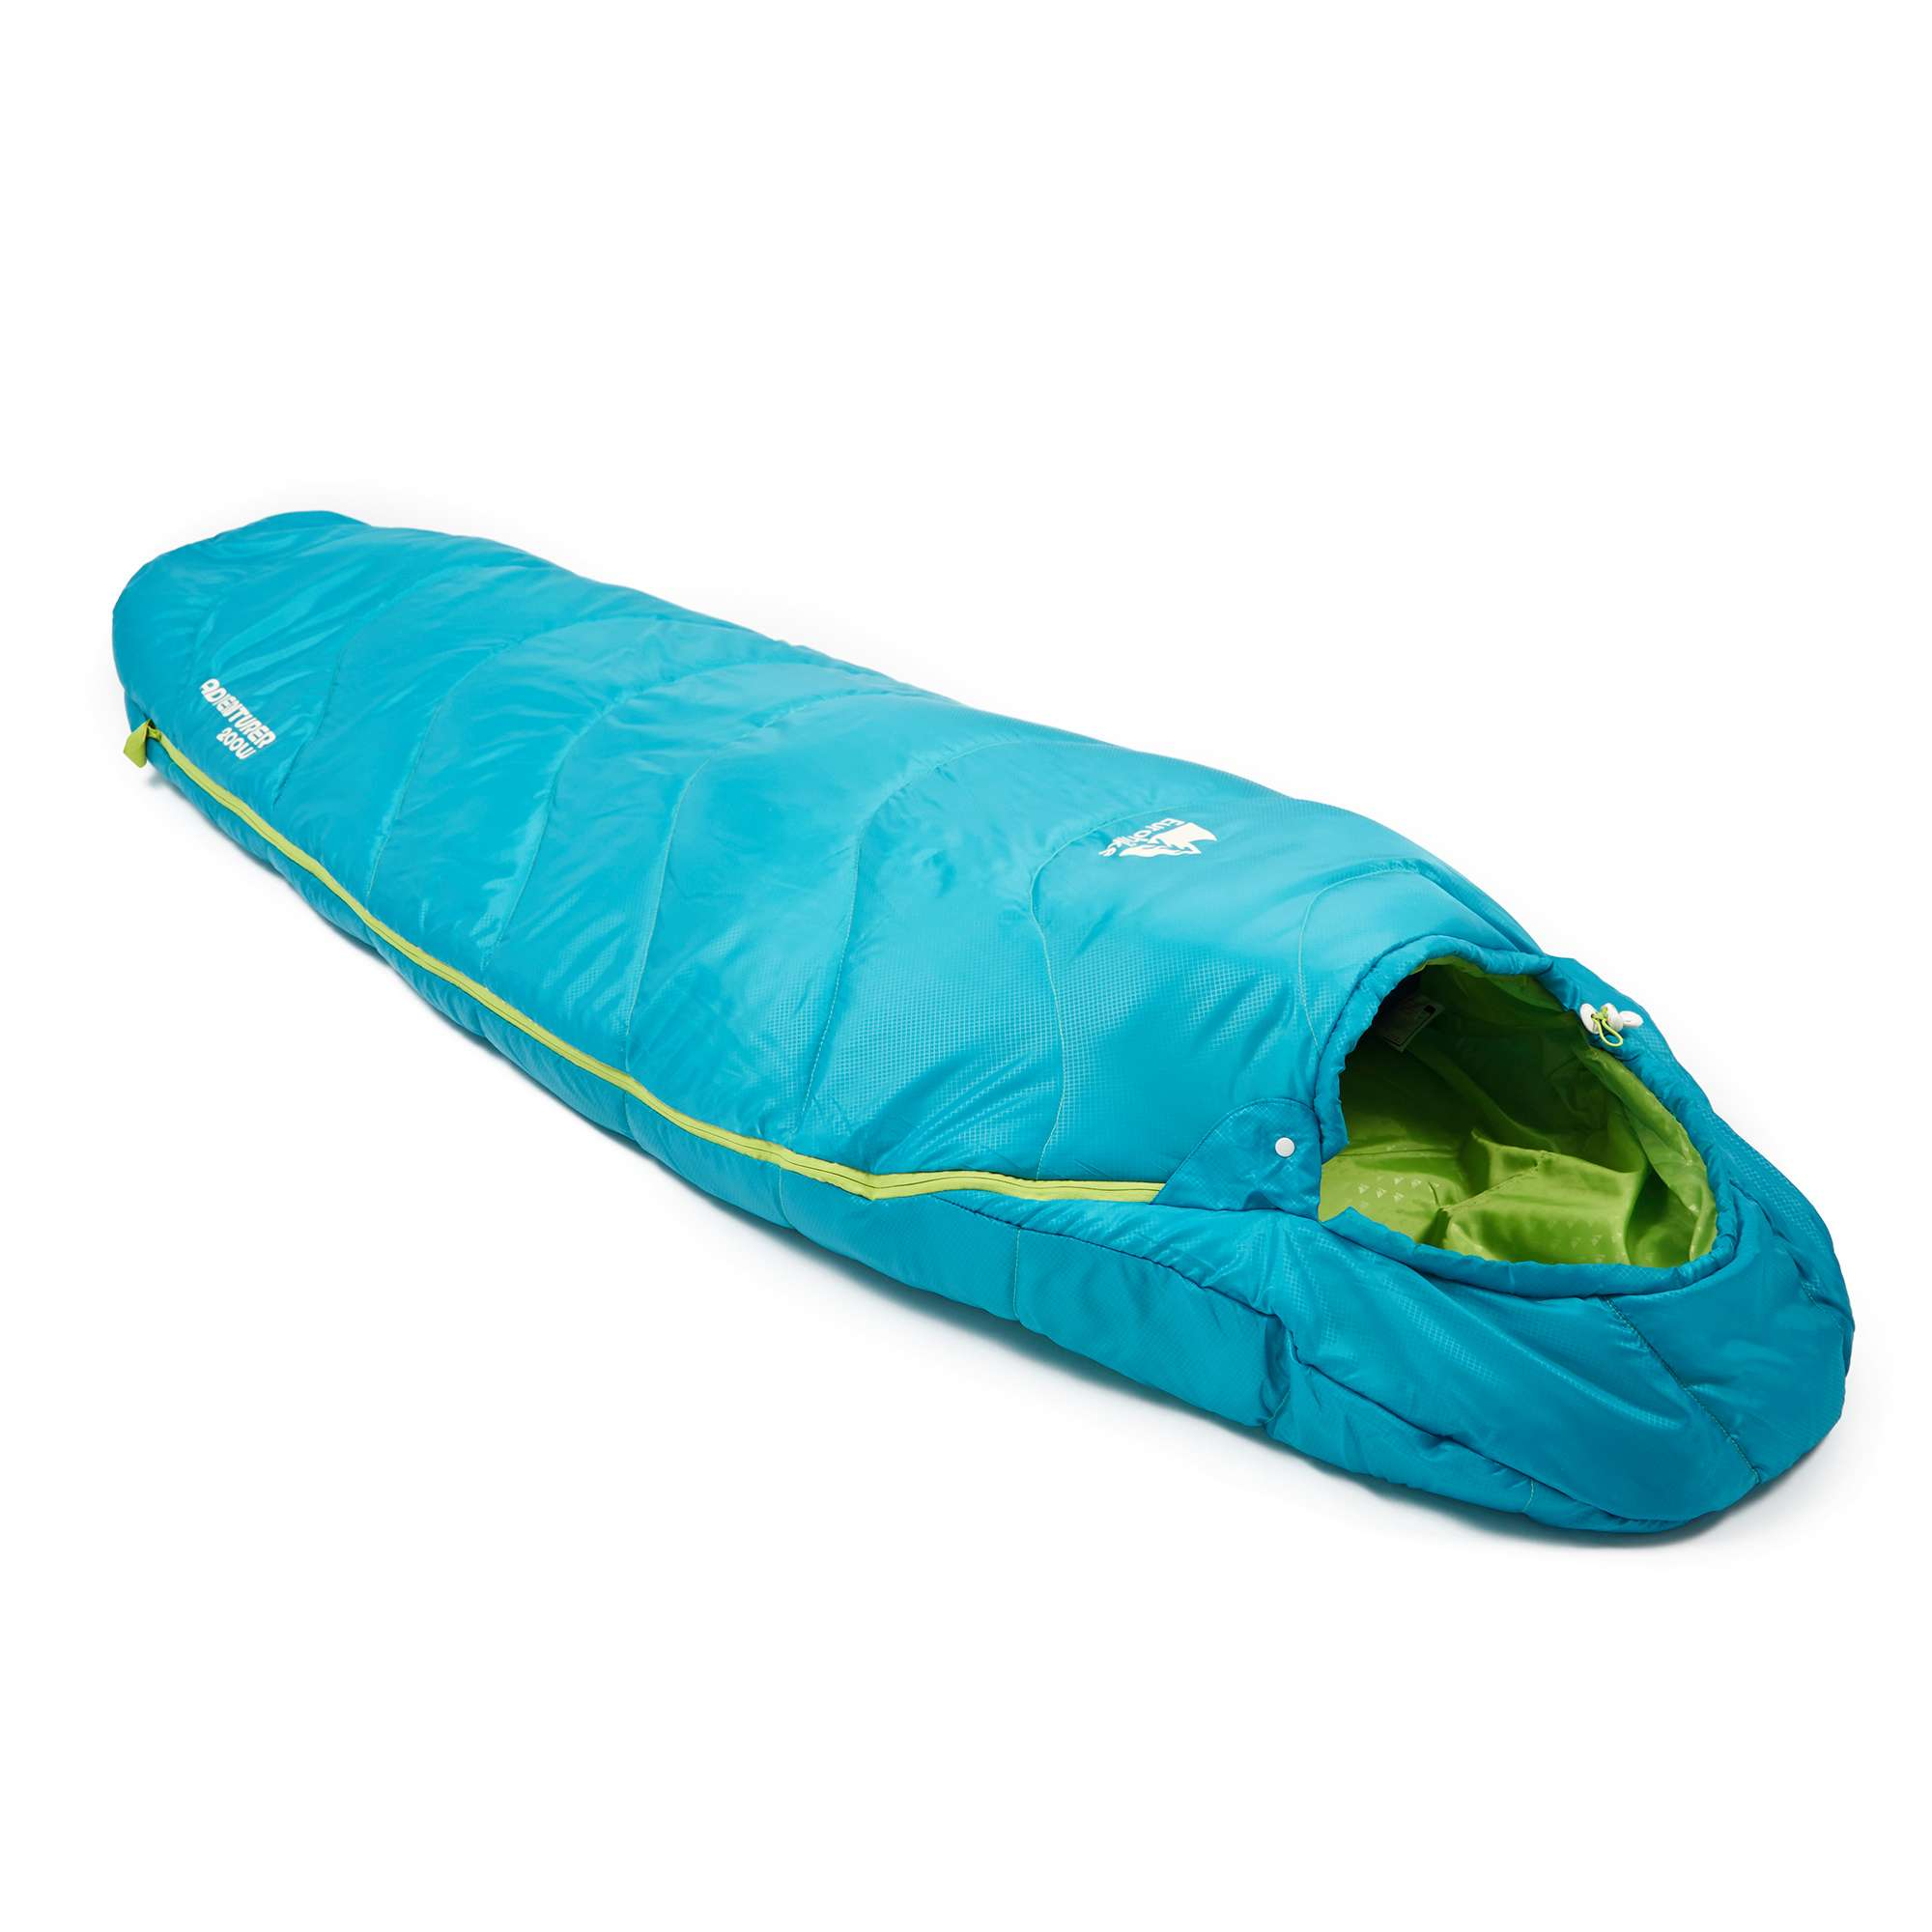 EUROHIKE Women's Adventurer 200 Sleeping Bag